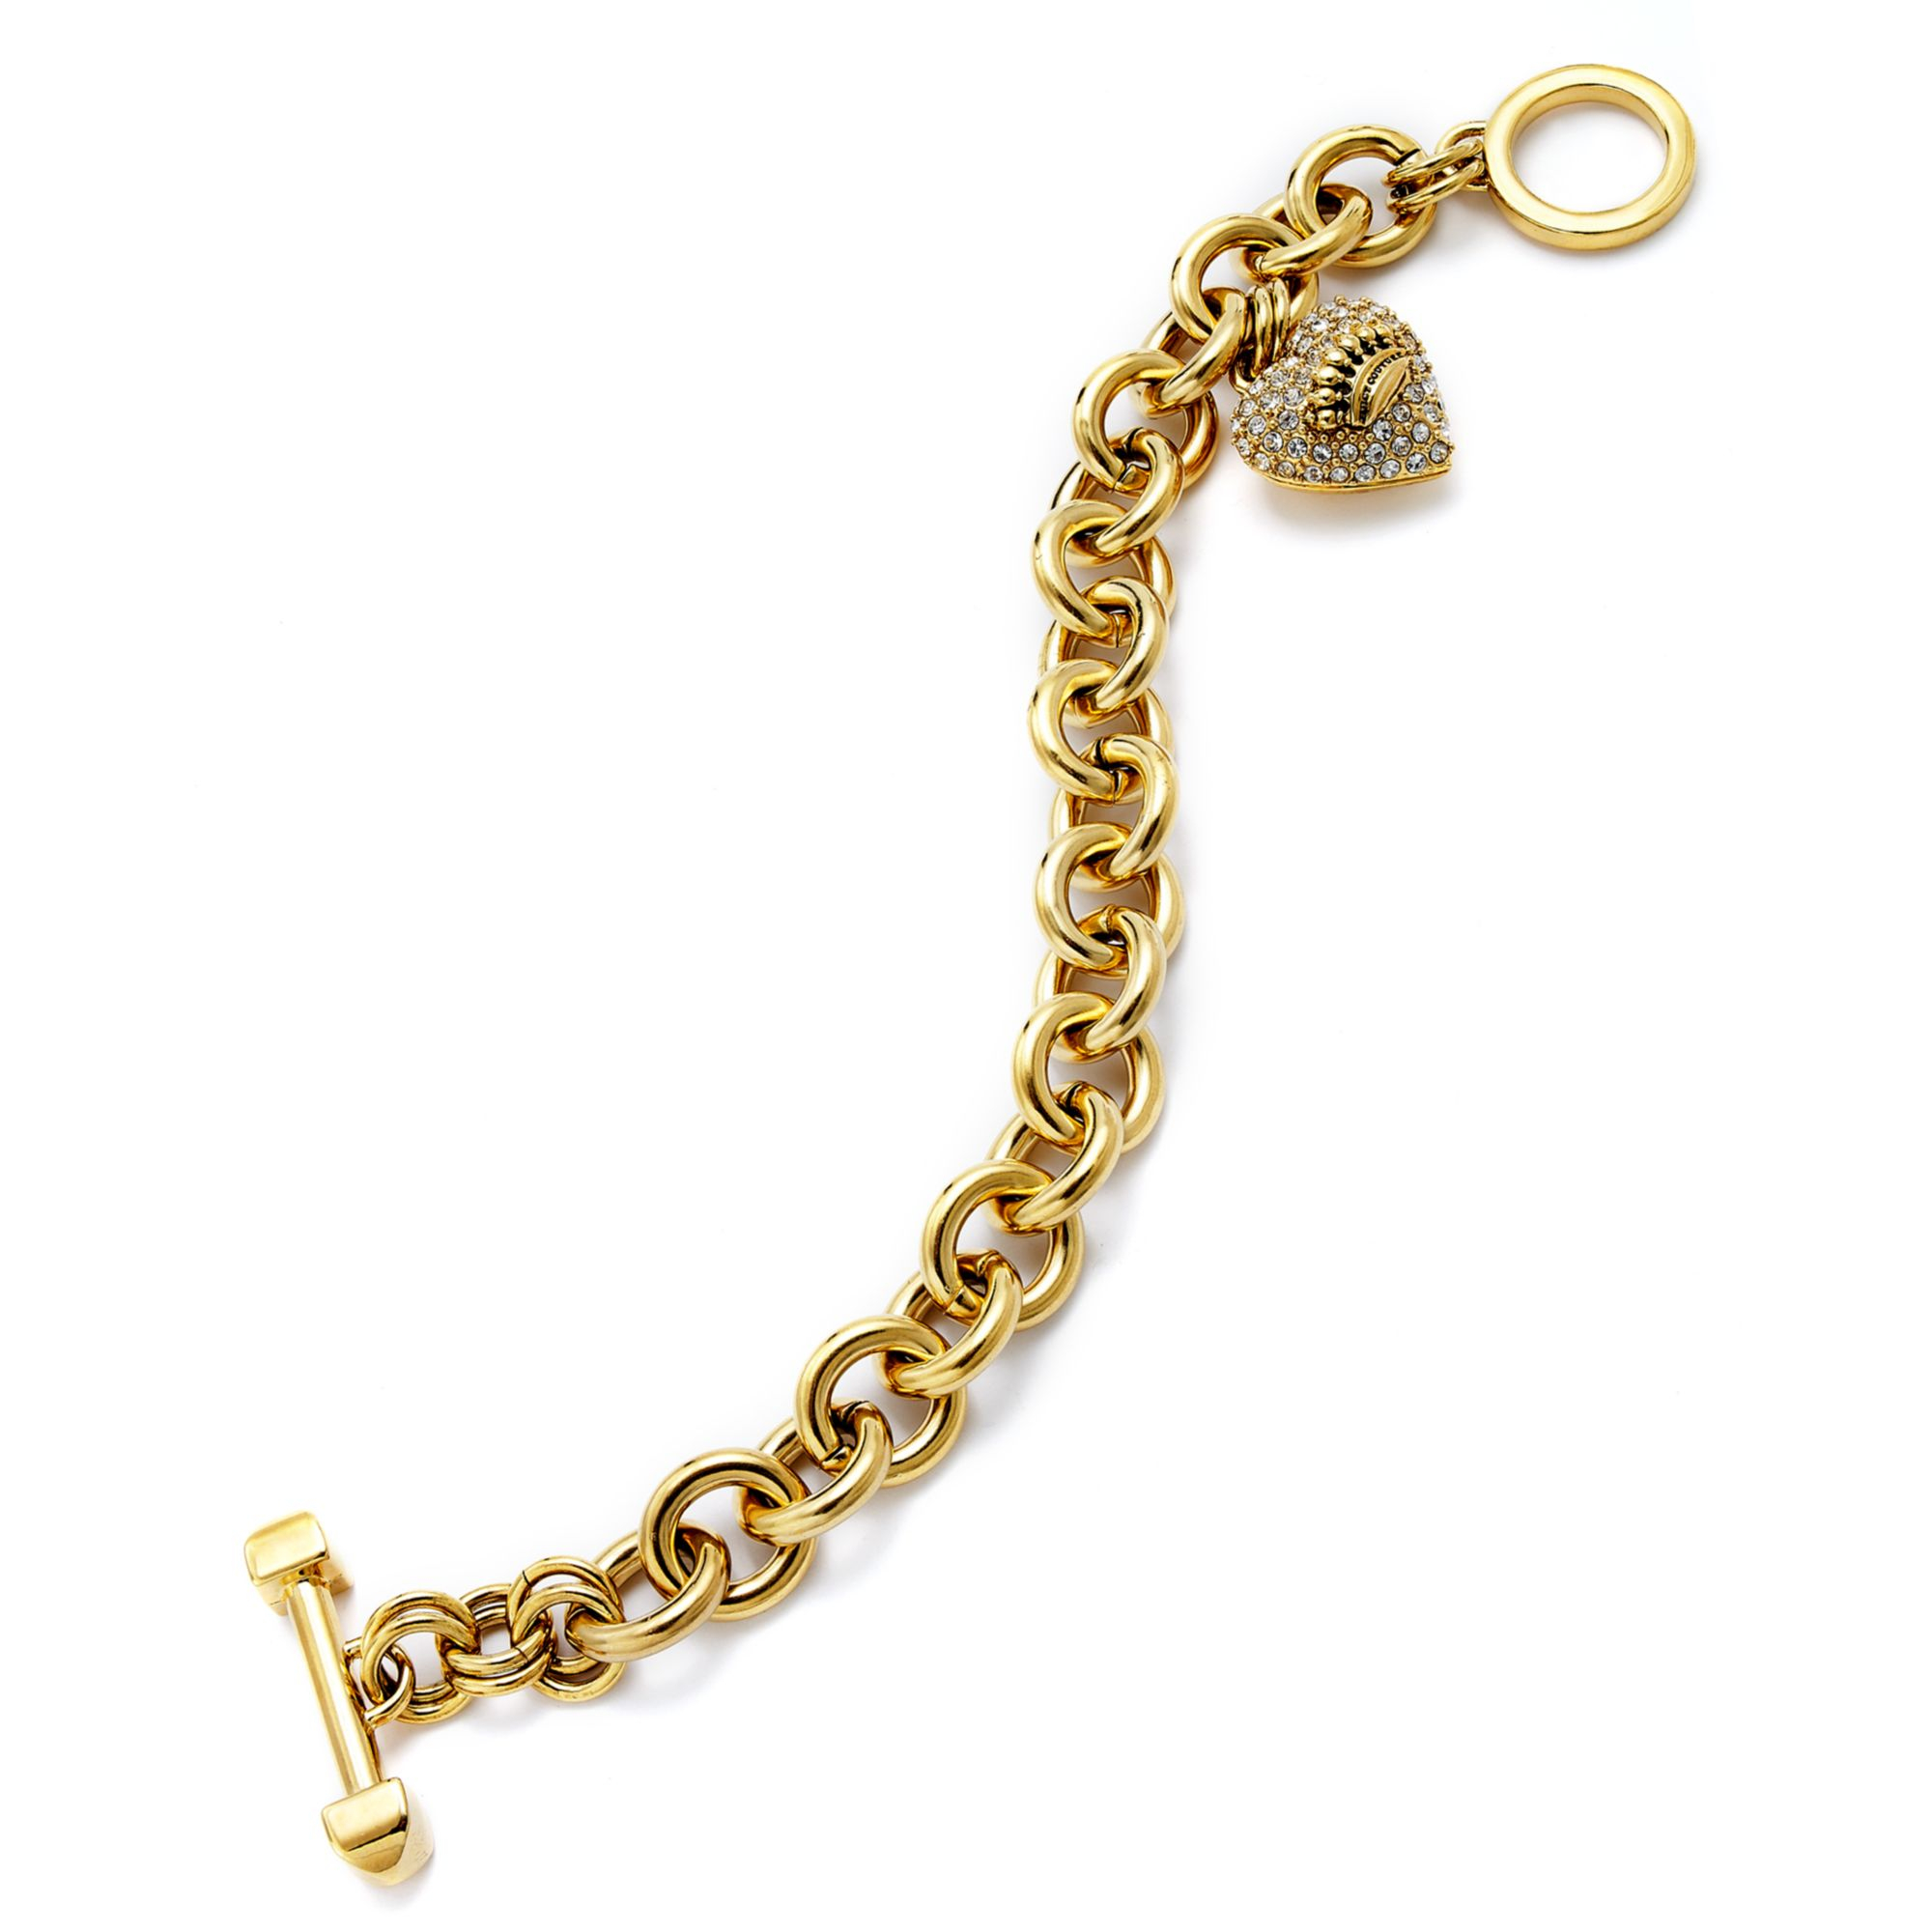 Juicy couture goldtone pave heart charm bracelet in gold no color